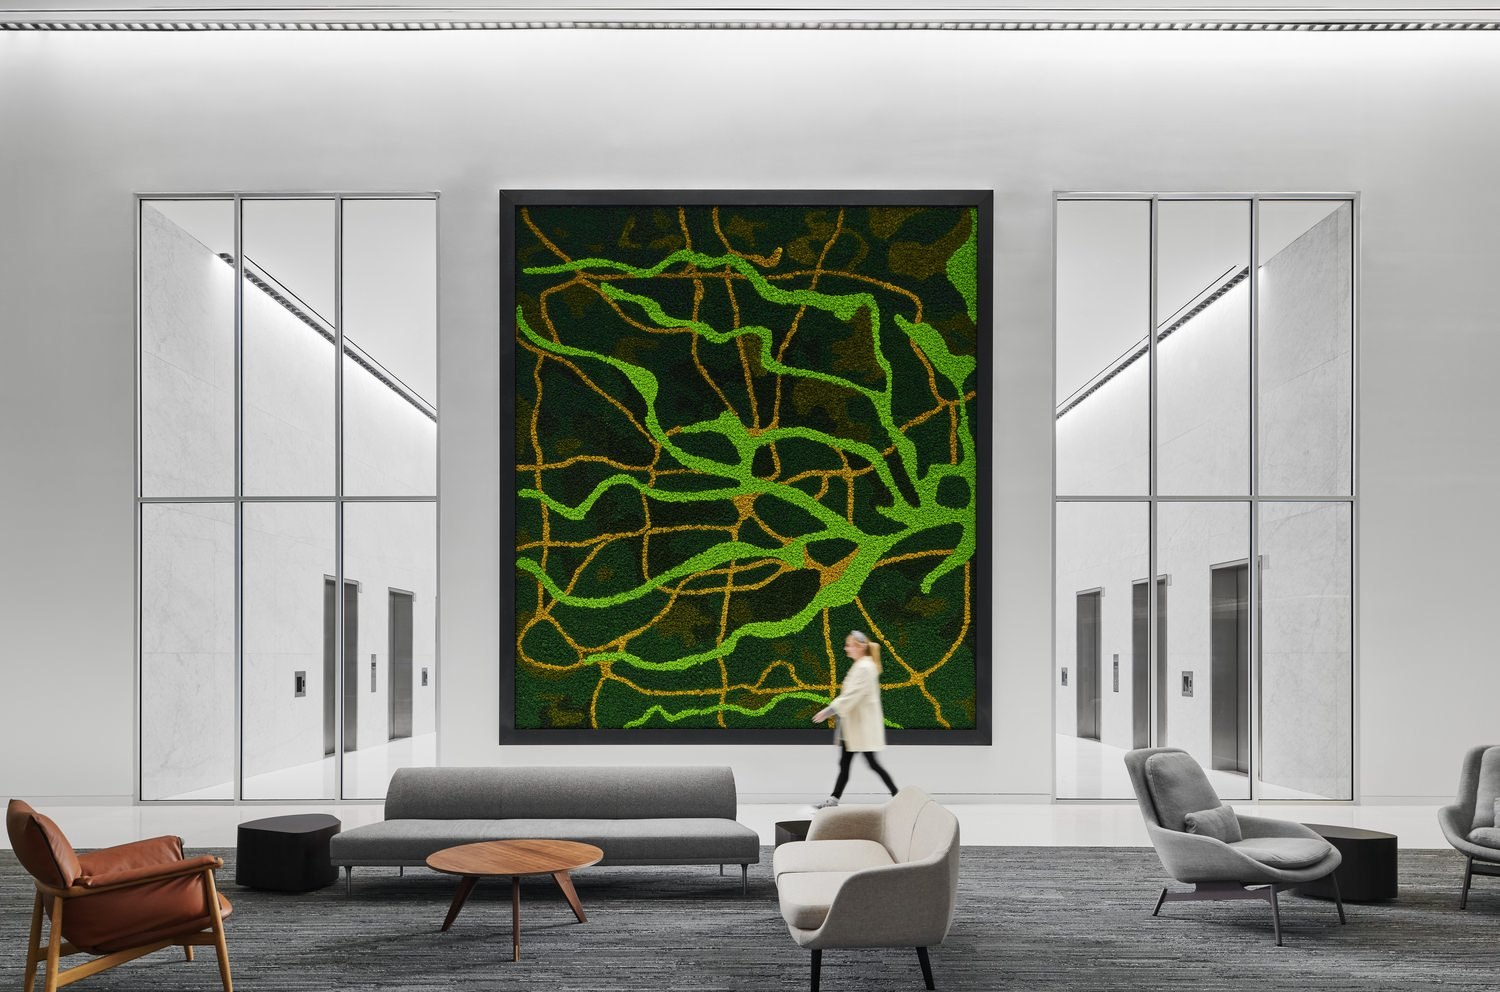 A woman walks across a building lobby. A large green mural hangs on the wall directly in front of the frame.